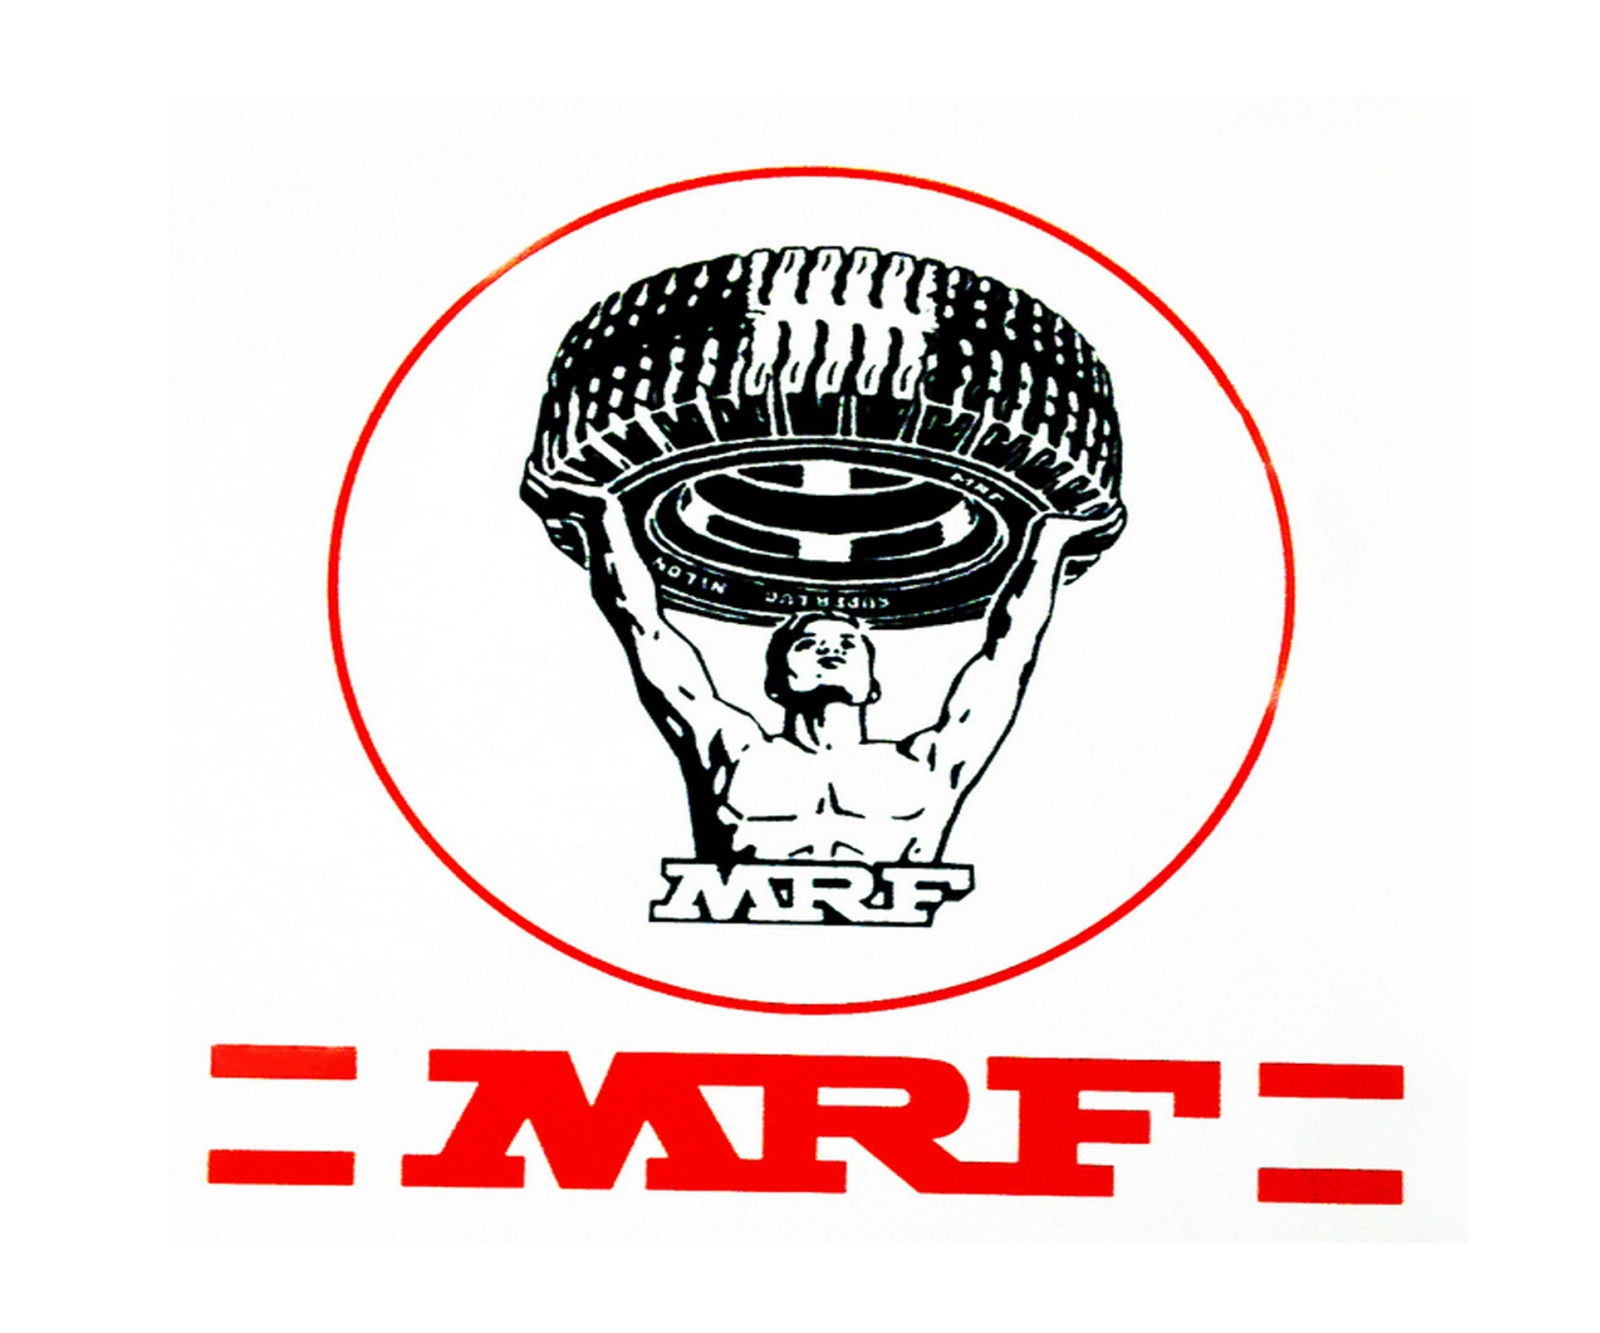 mrf ltd F&o quote of mrf share price, future and options mrf live bse, nse charts, historical charts, f&o quote, stock quote of mrf, mrf news, videos, stock market reports, capitalisation, financial report, volume, market performance, company results information, balance sheet and mrf company announcements on ndtvprofitcom.